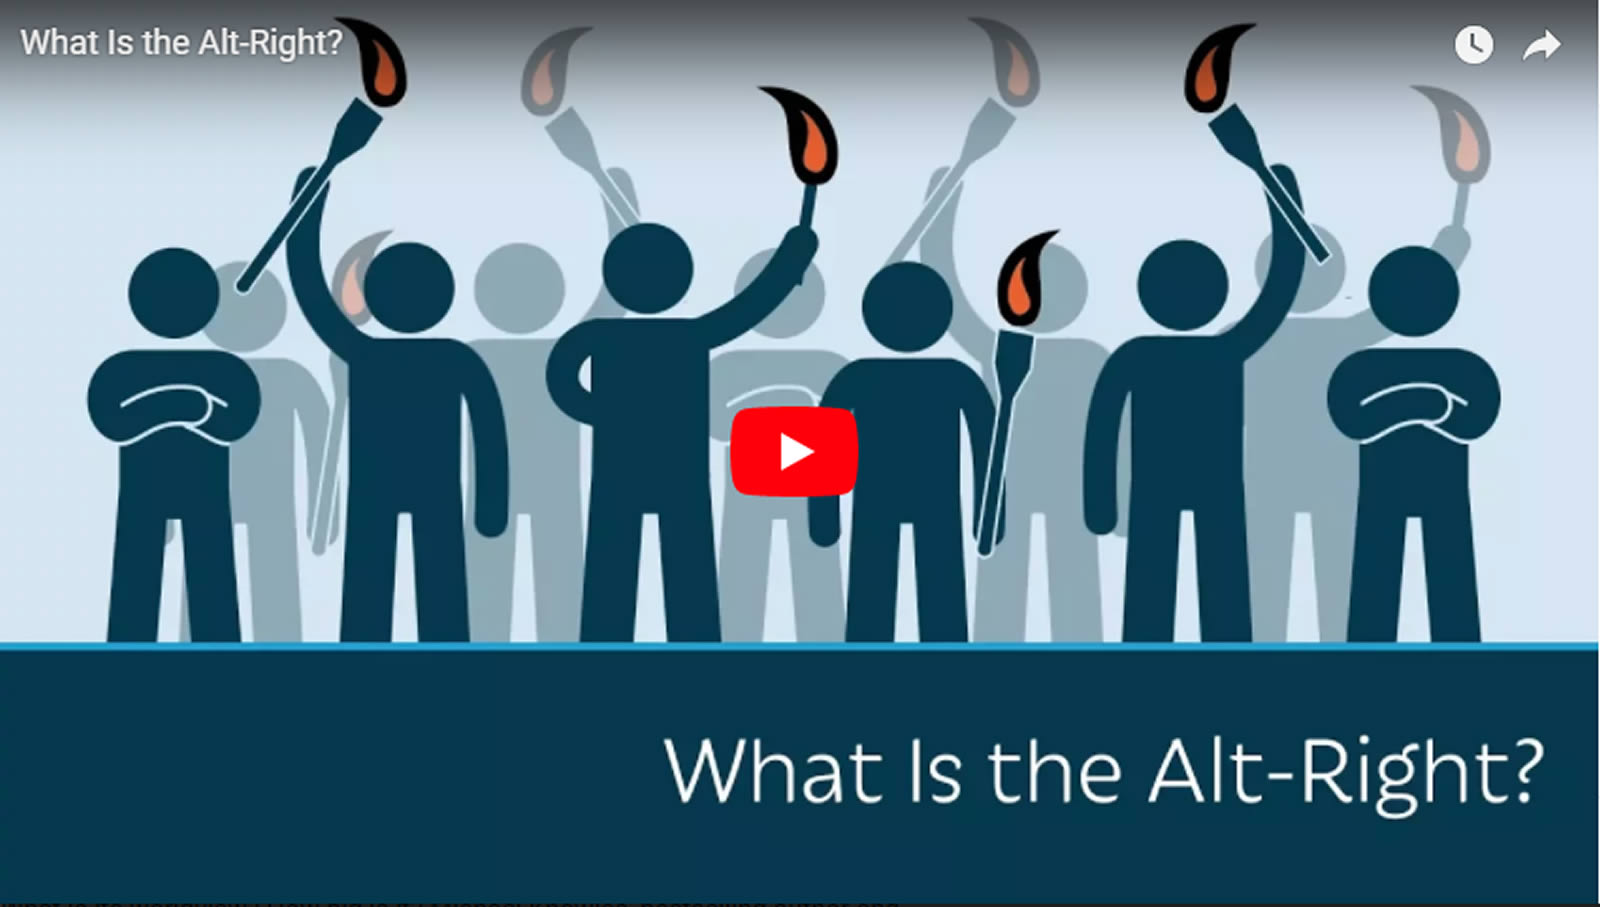 Prager Univerity - What is the Alt-Right